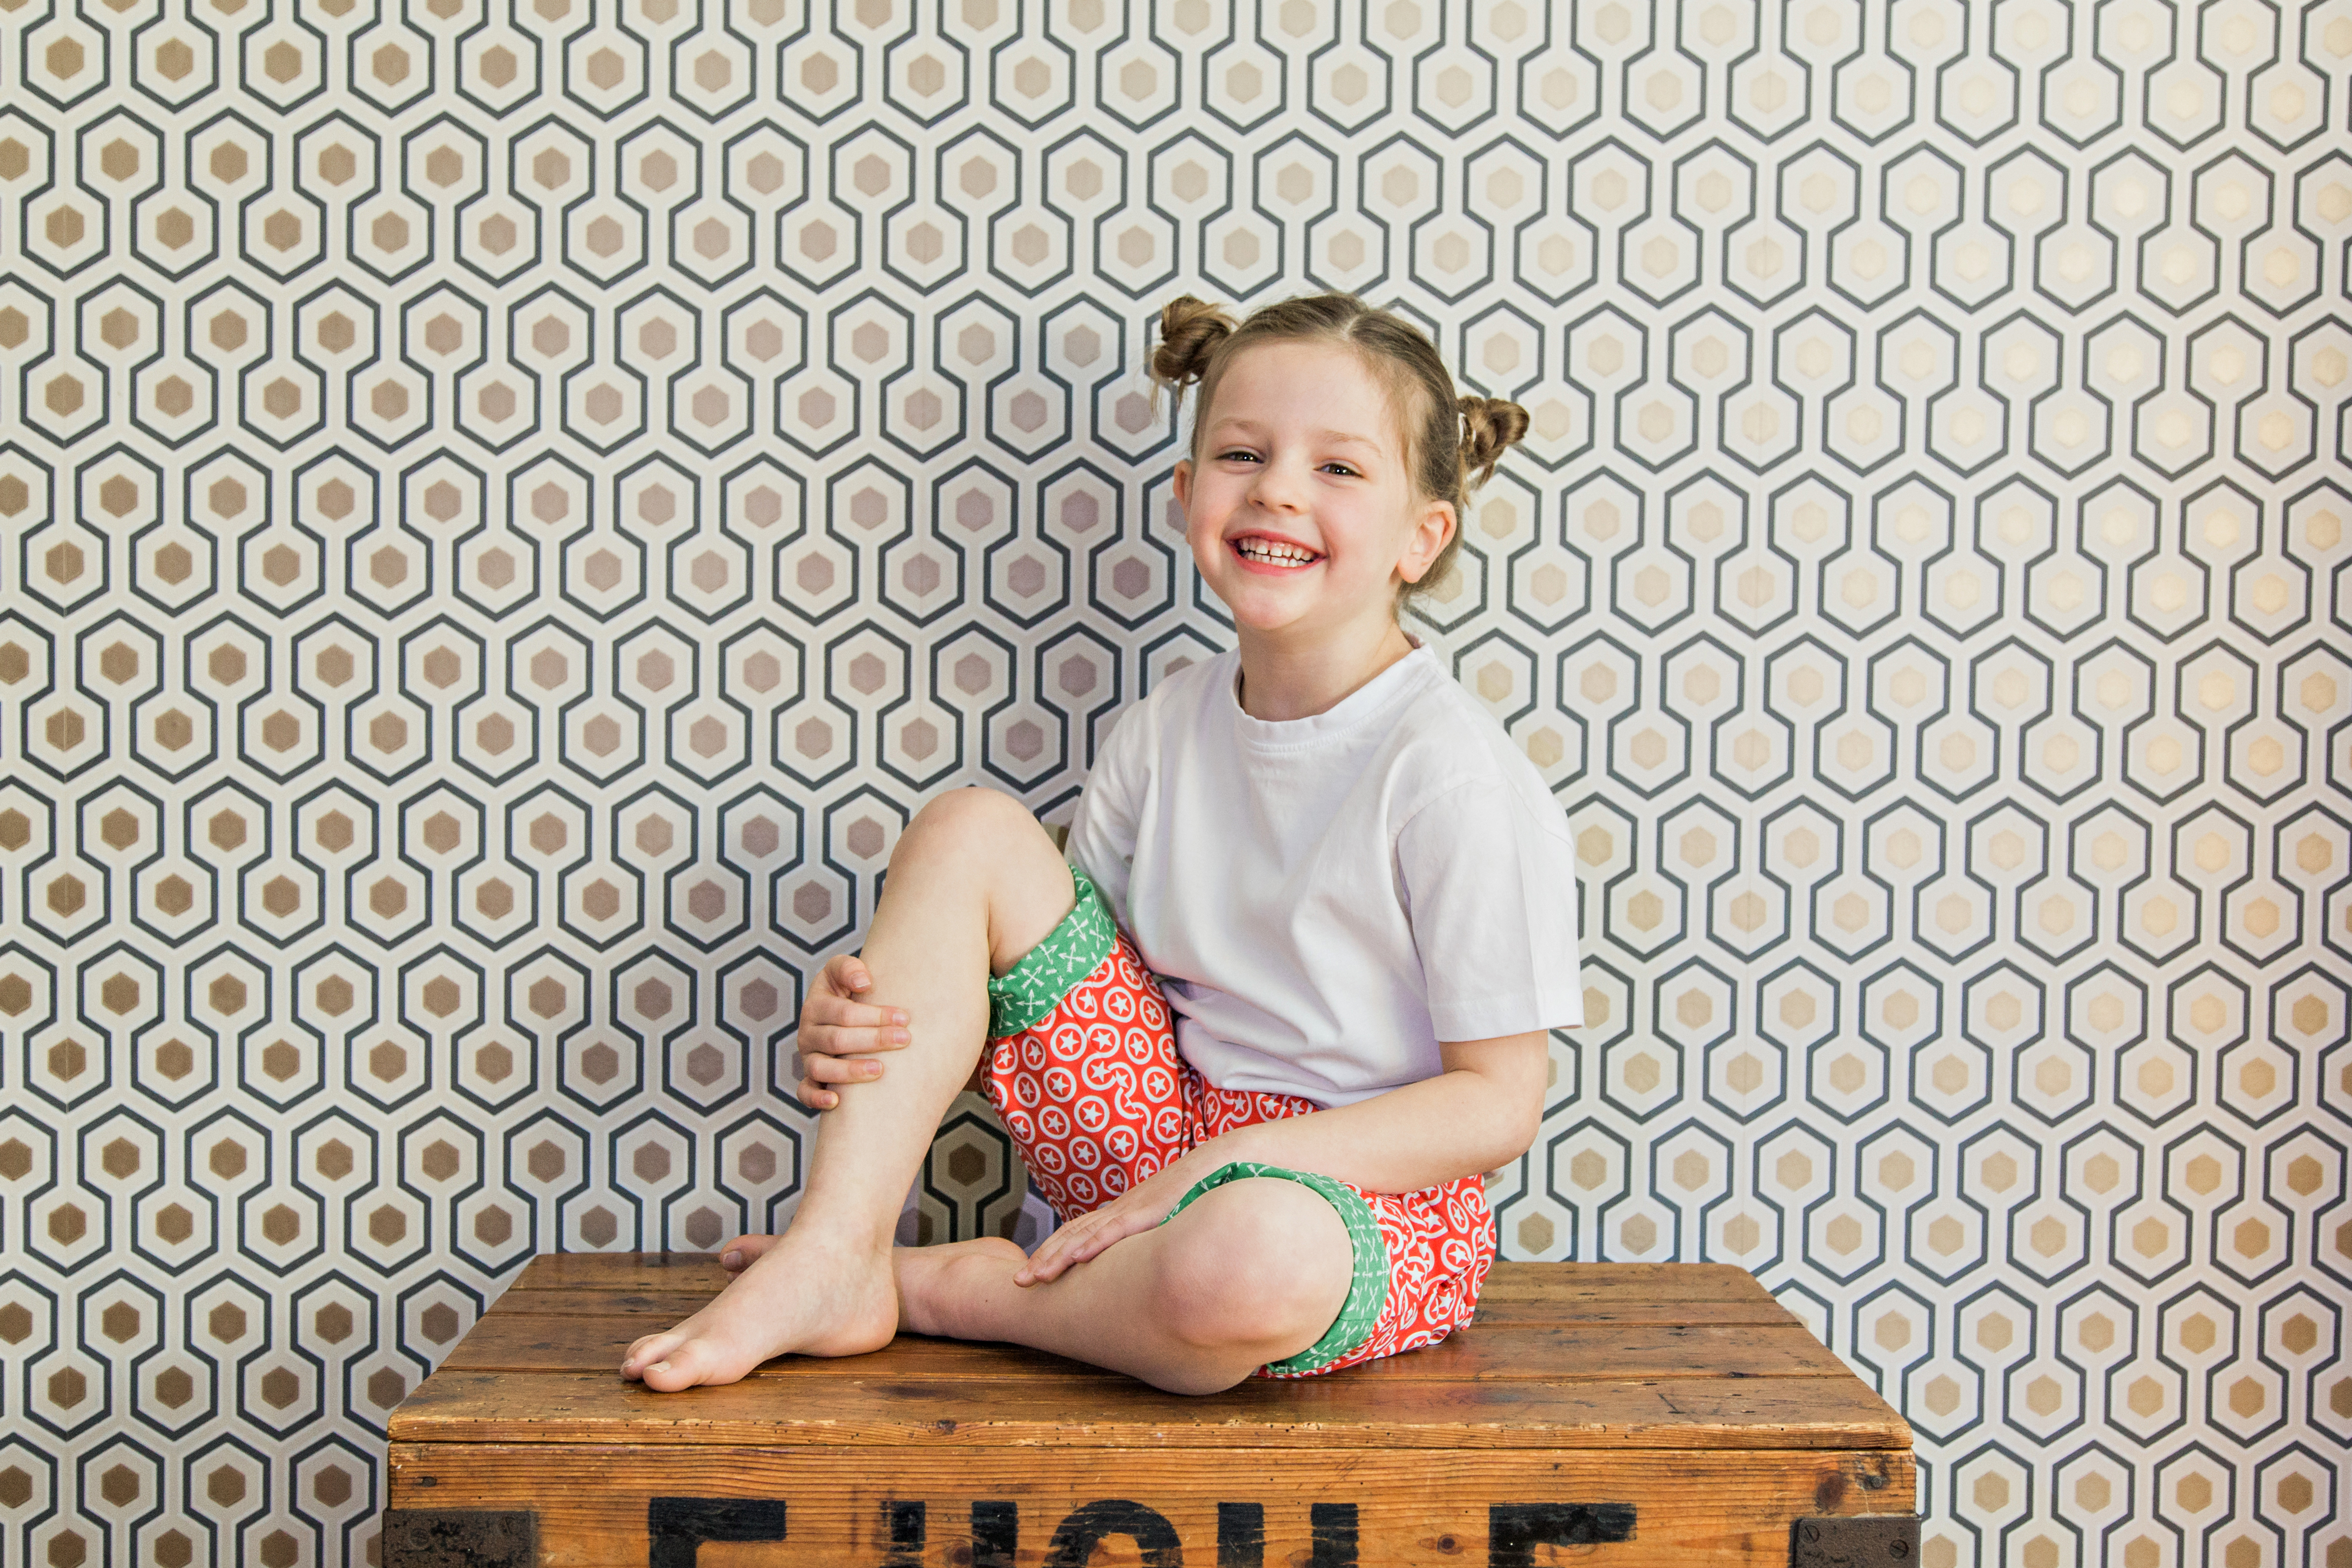 Emporia kid's patterns collection